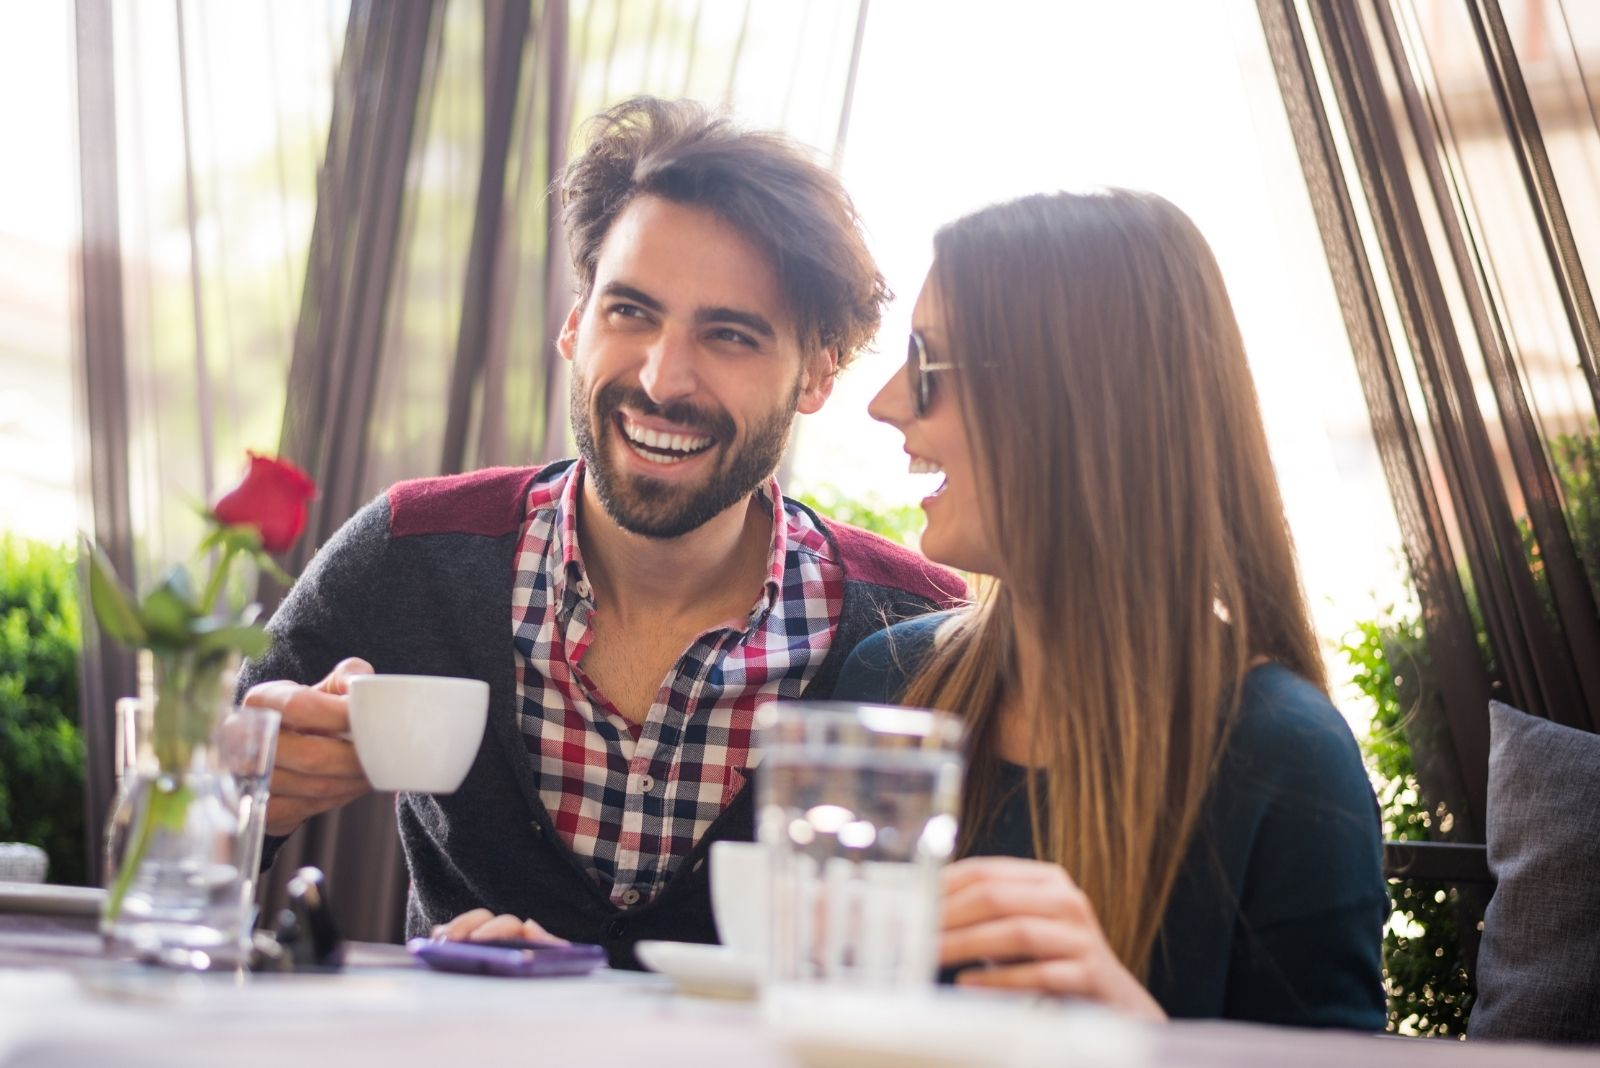 young couple dating in a cafe smiling and laughing in an outdoor cafe